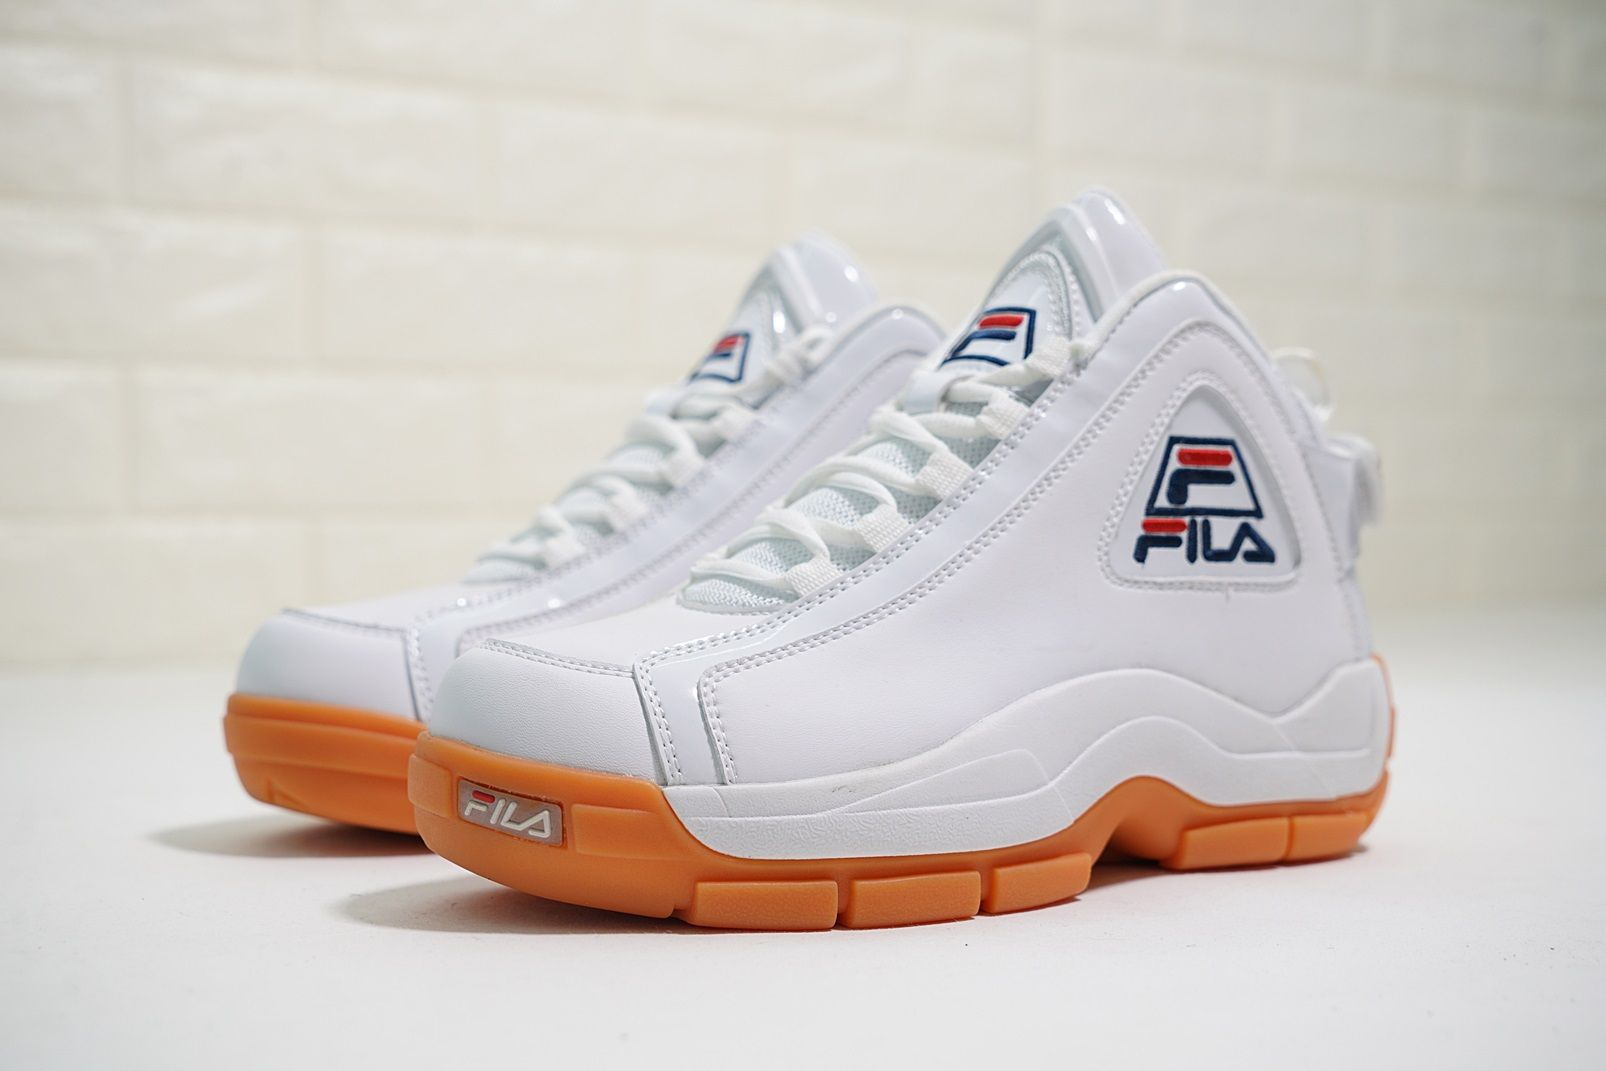 b9f730be9435 FILA 96 GRANT HILL RETRO BASKETBALL FOOTWEAR WHITE NAVY FHE101 05   sponsored  fila